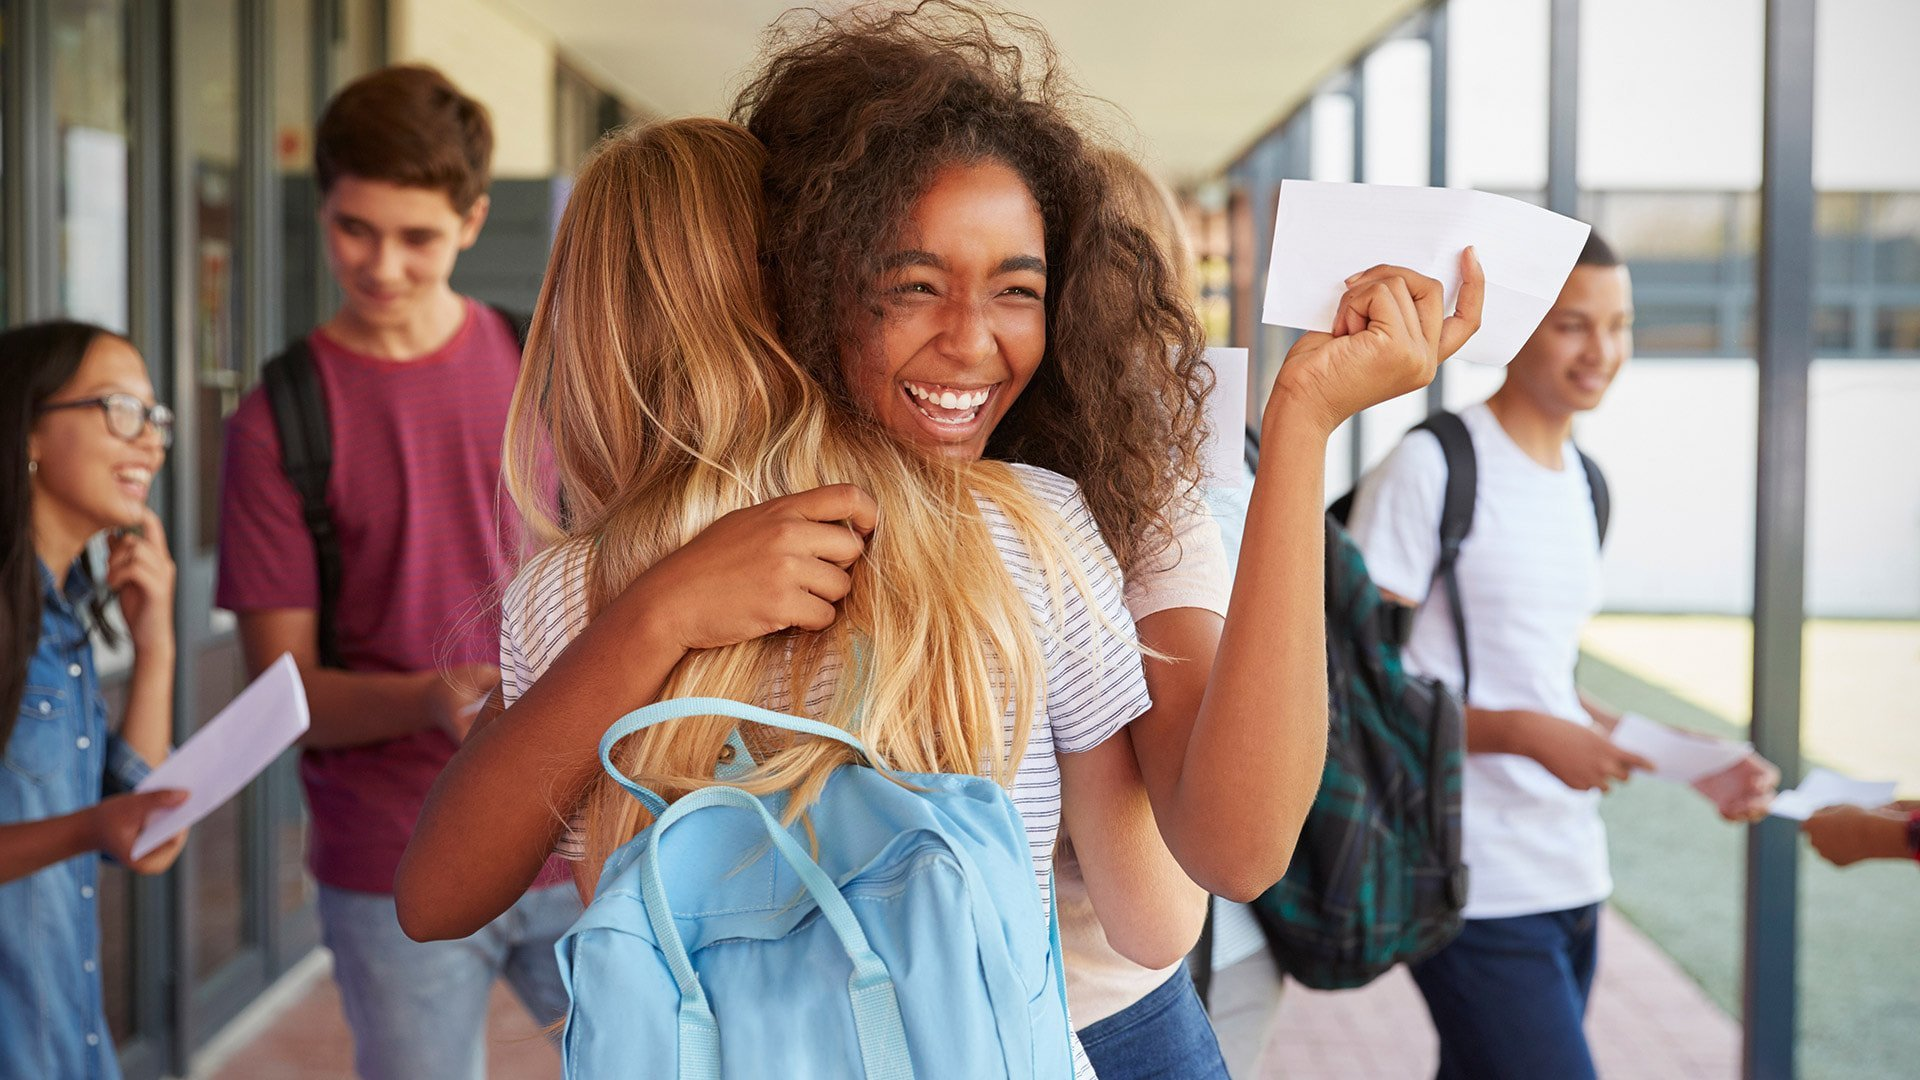 Two-Girls-Celebrating-council-election-in-School-Corridor